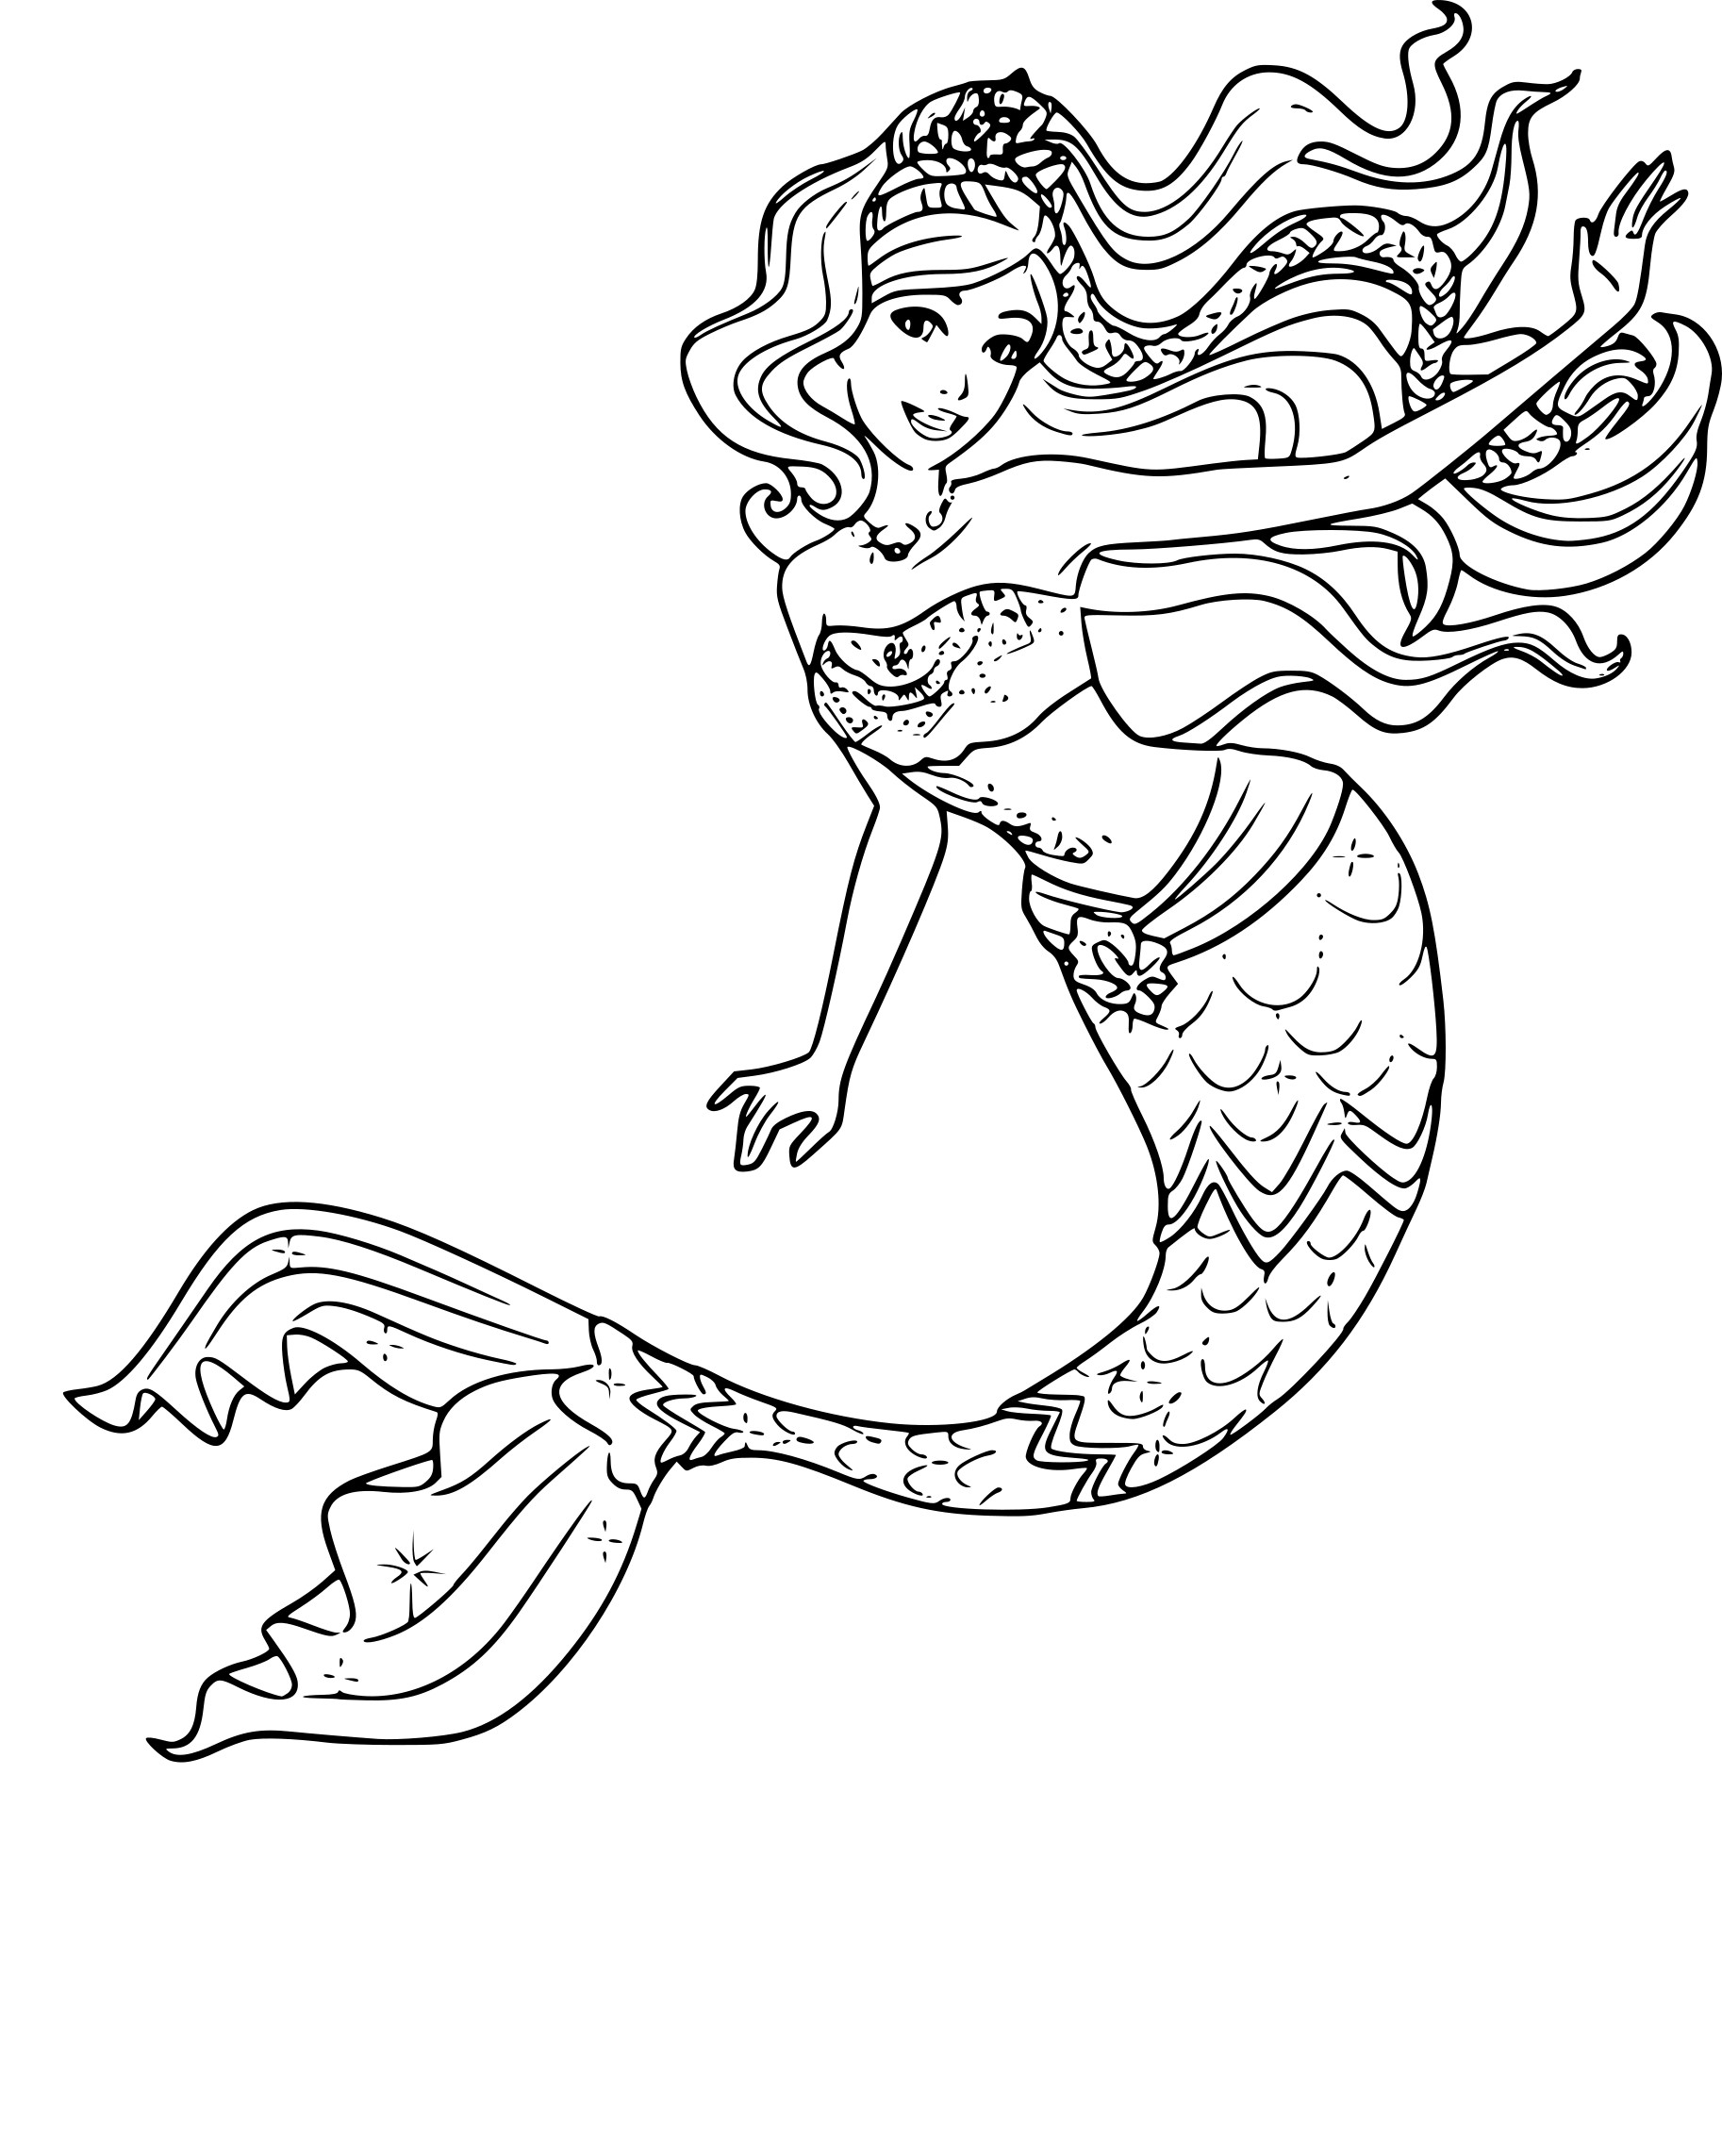 Coloriage barbie sir ne 2 imprimer gratuit - Barbie sirene coloriage ...